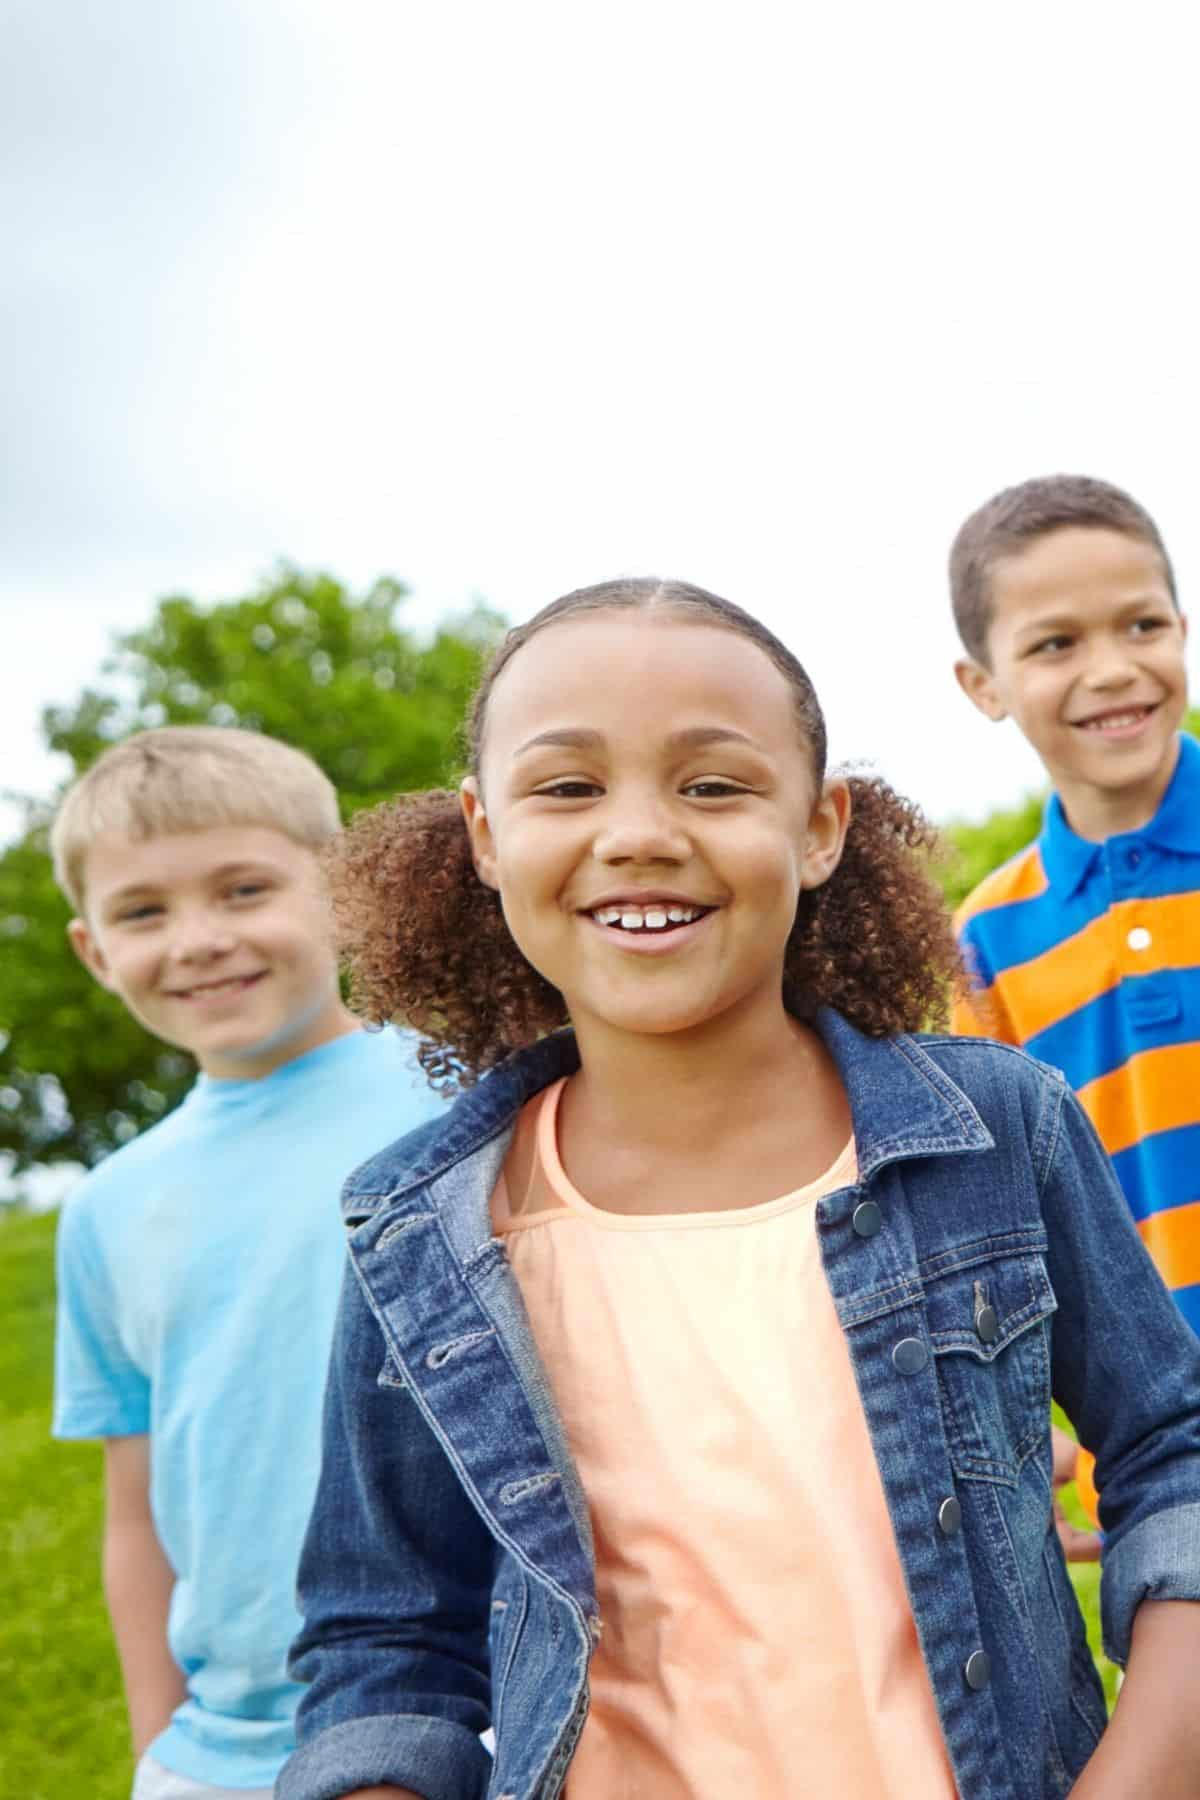 three smiling children at a park